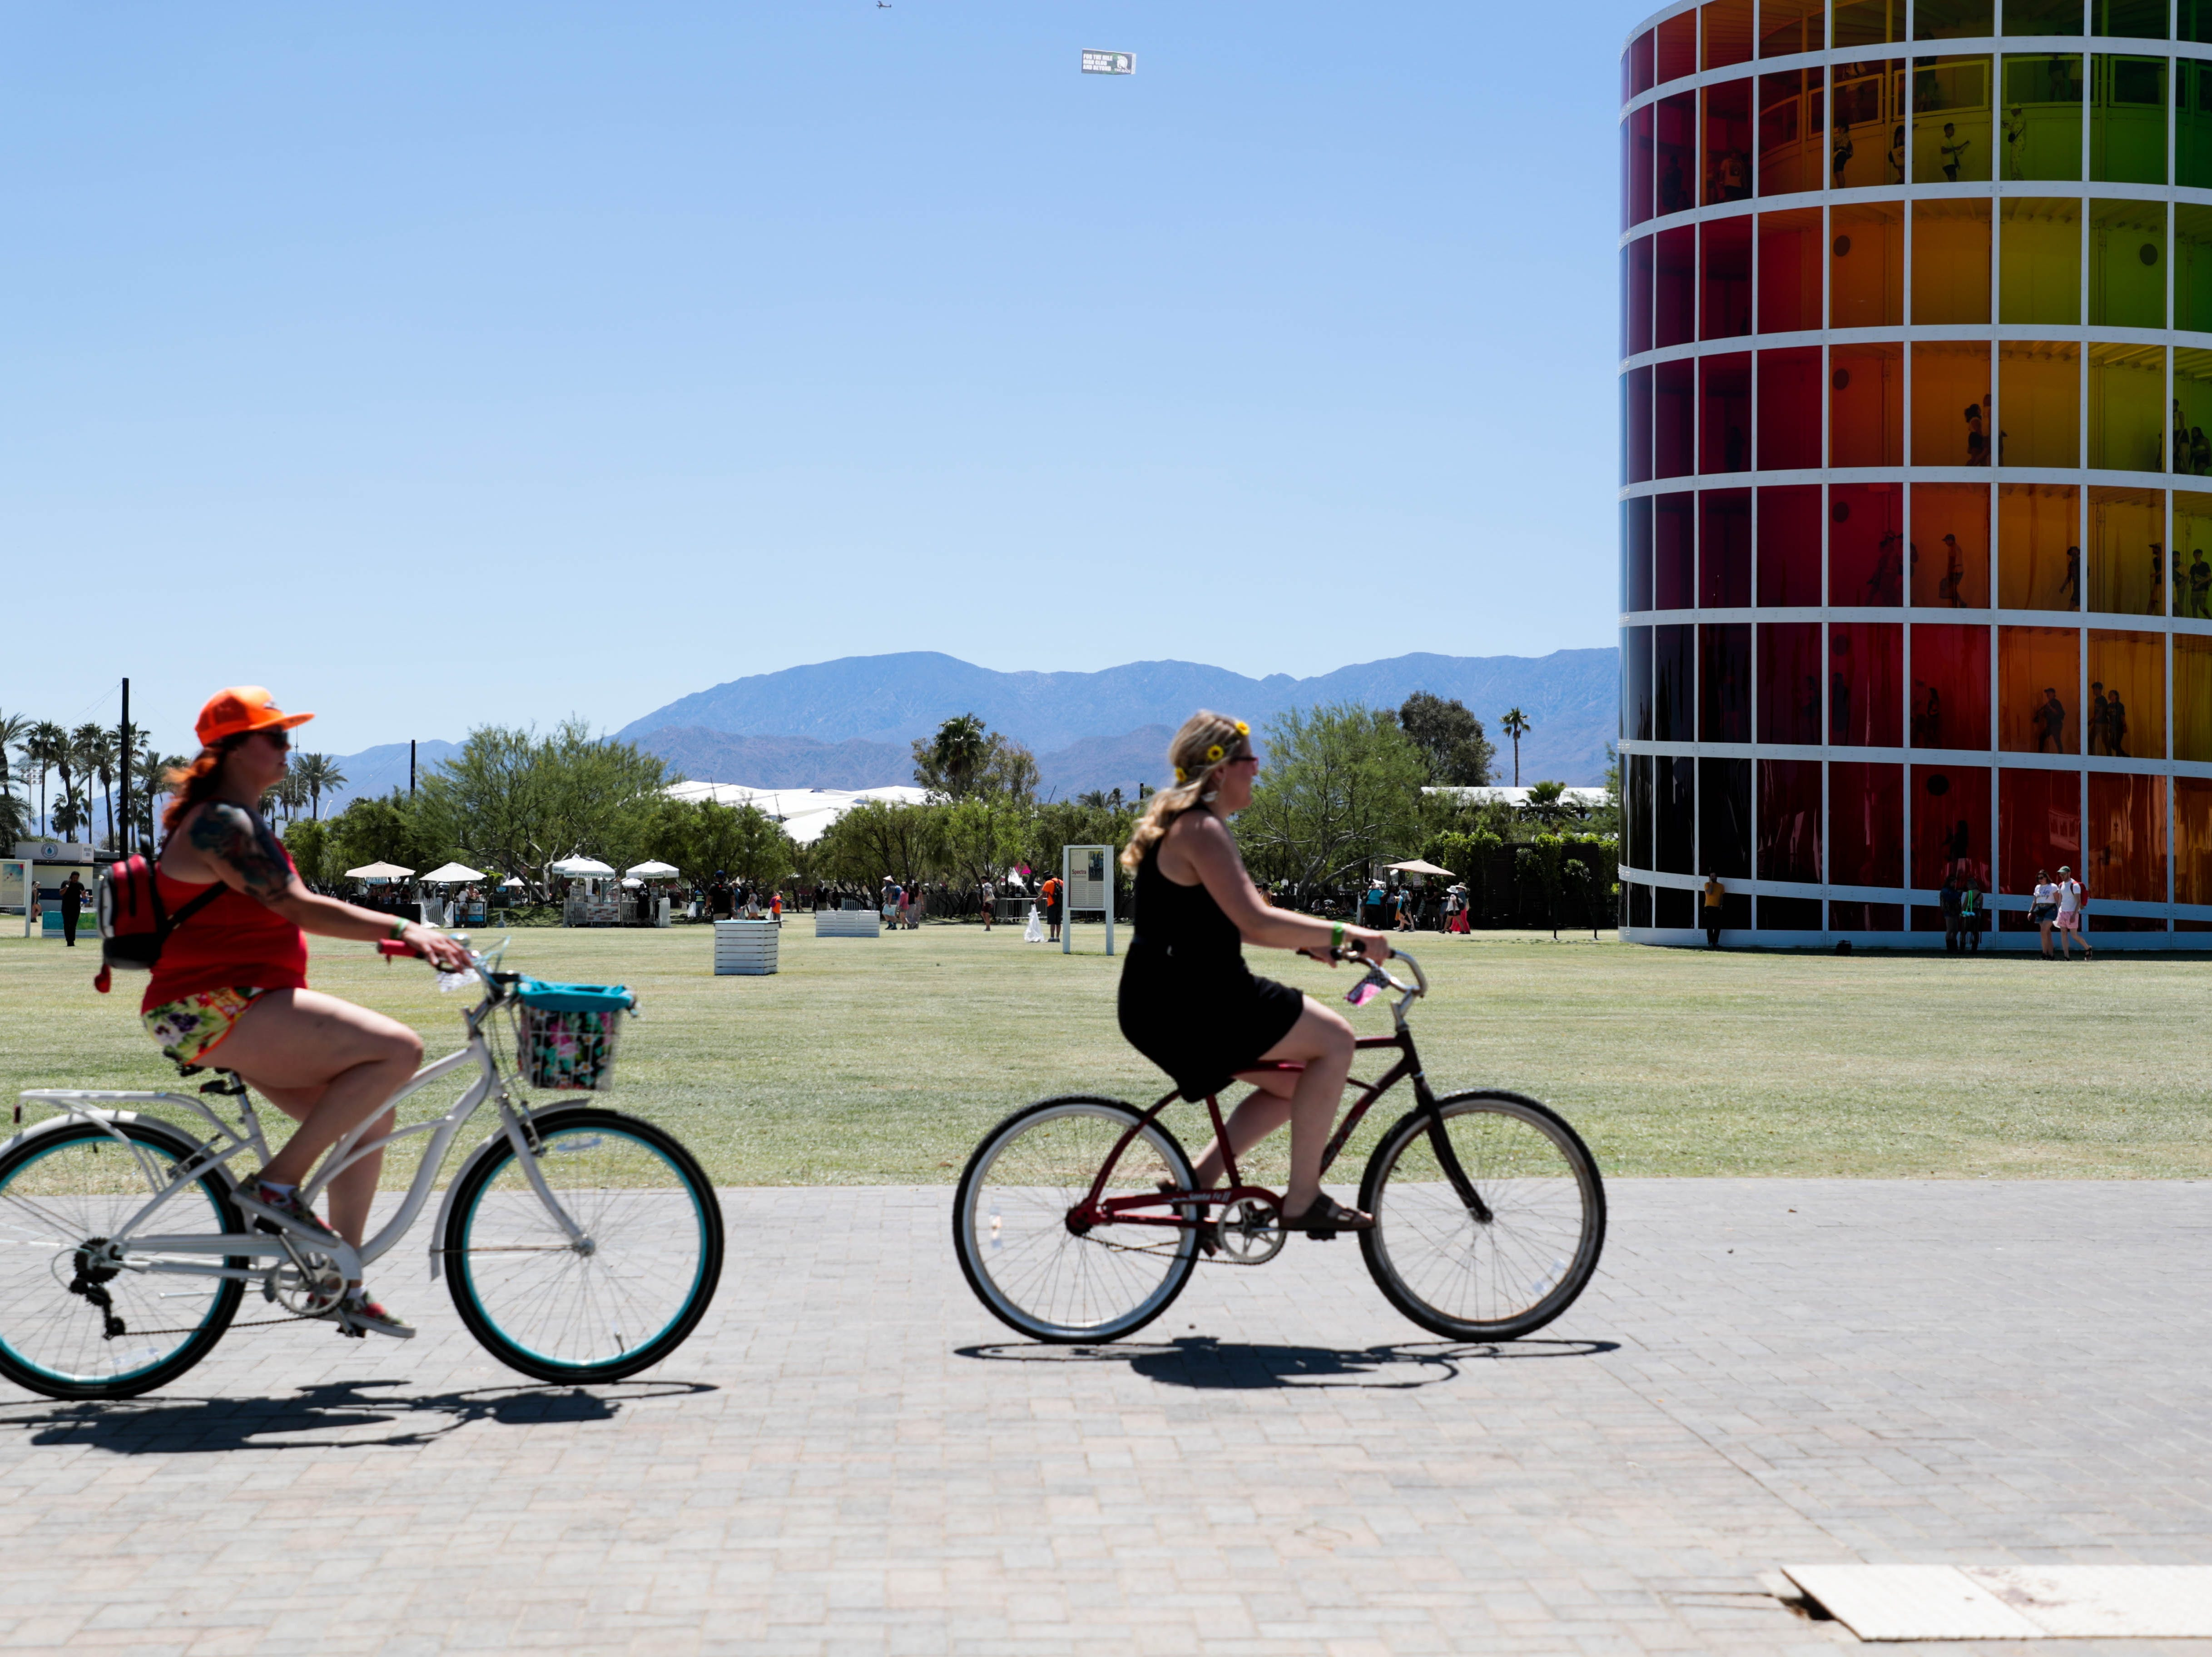 Two women ride bikes on Saturday, April 13, 2019 at Coachella Valley Music and Arts Festival in Indio, Calif.